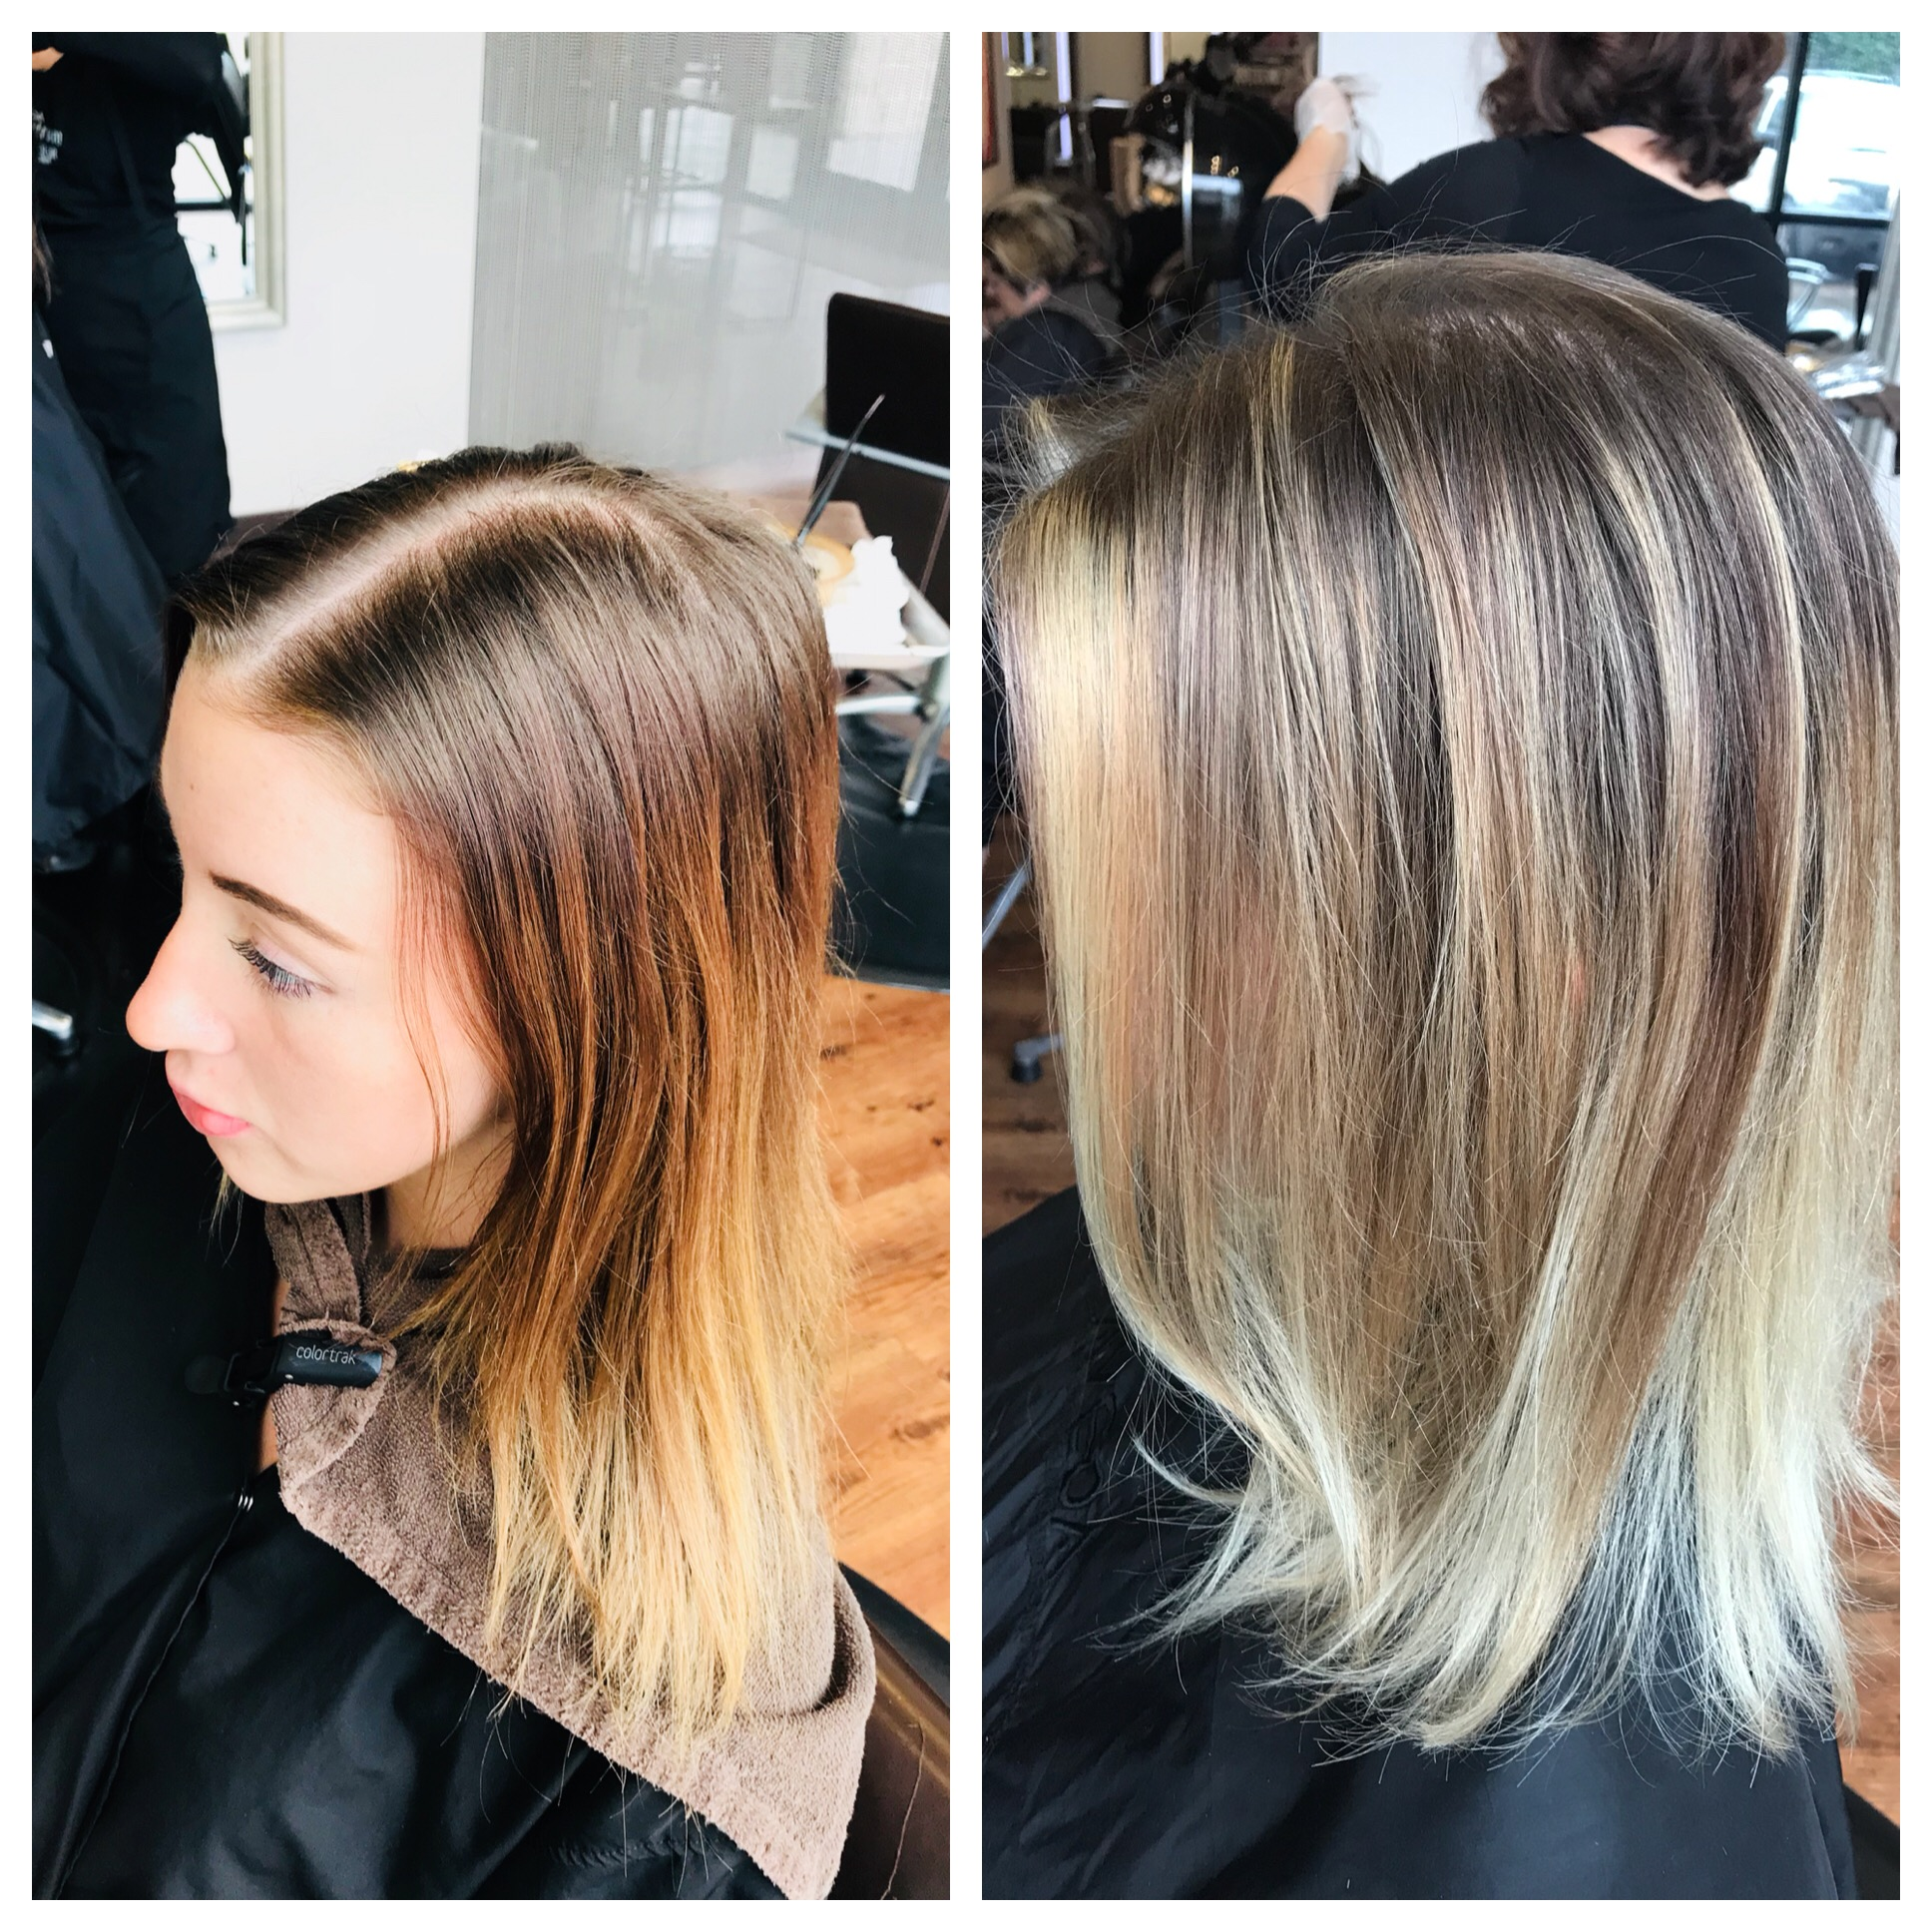 Will Peck Coppell Stylist Transformation Highlights